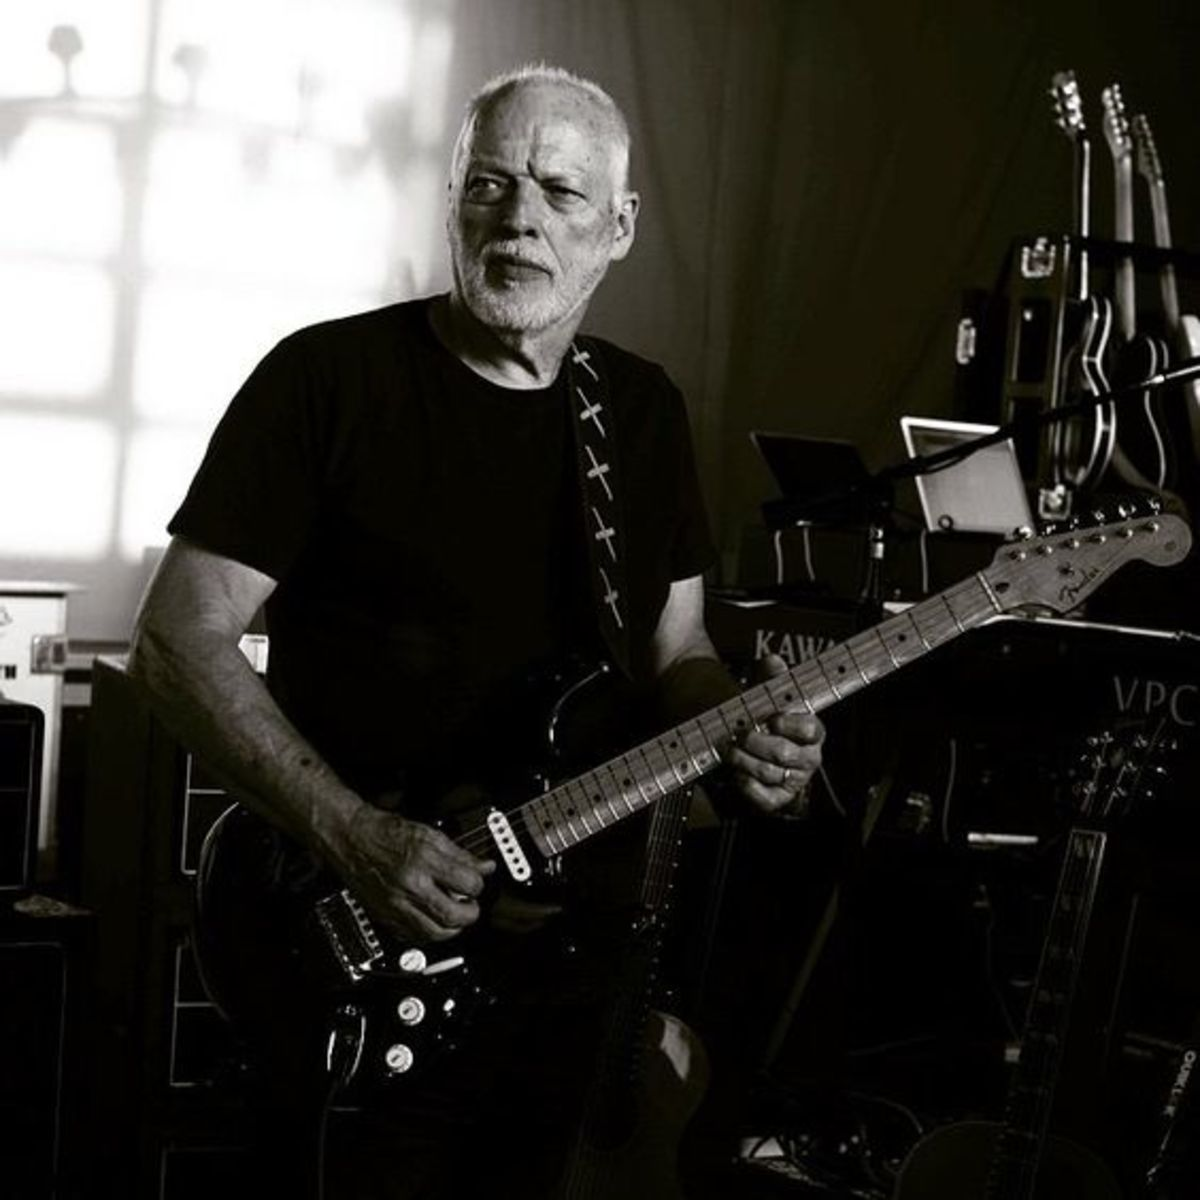 Gilmour and The Black Strat.